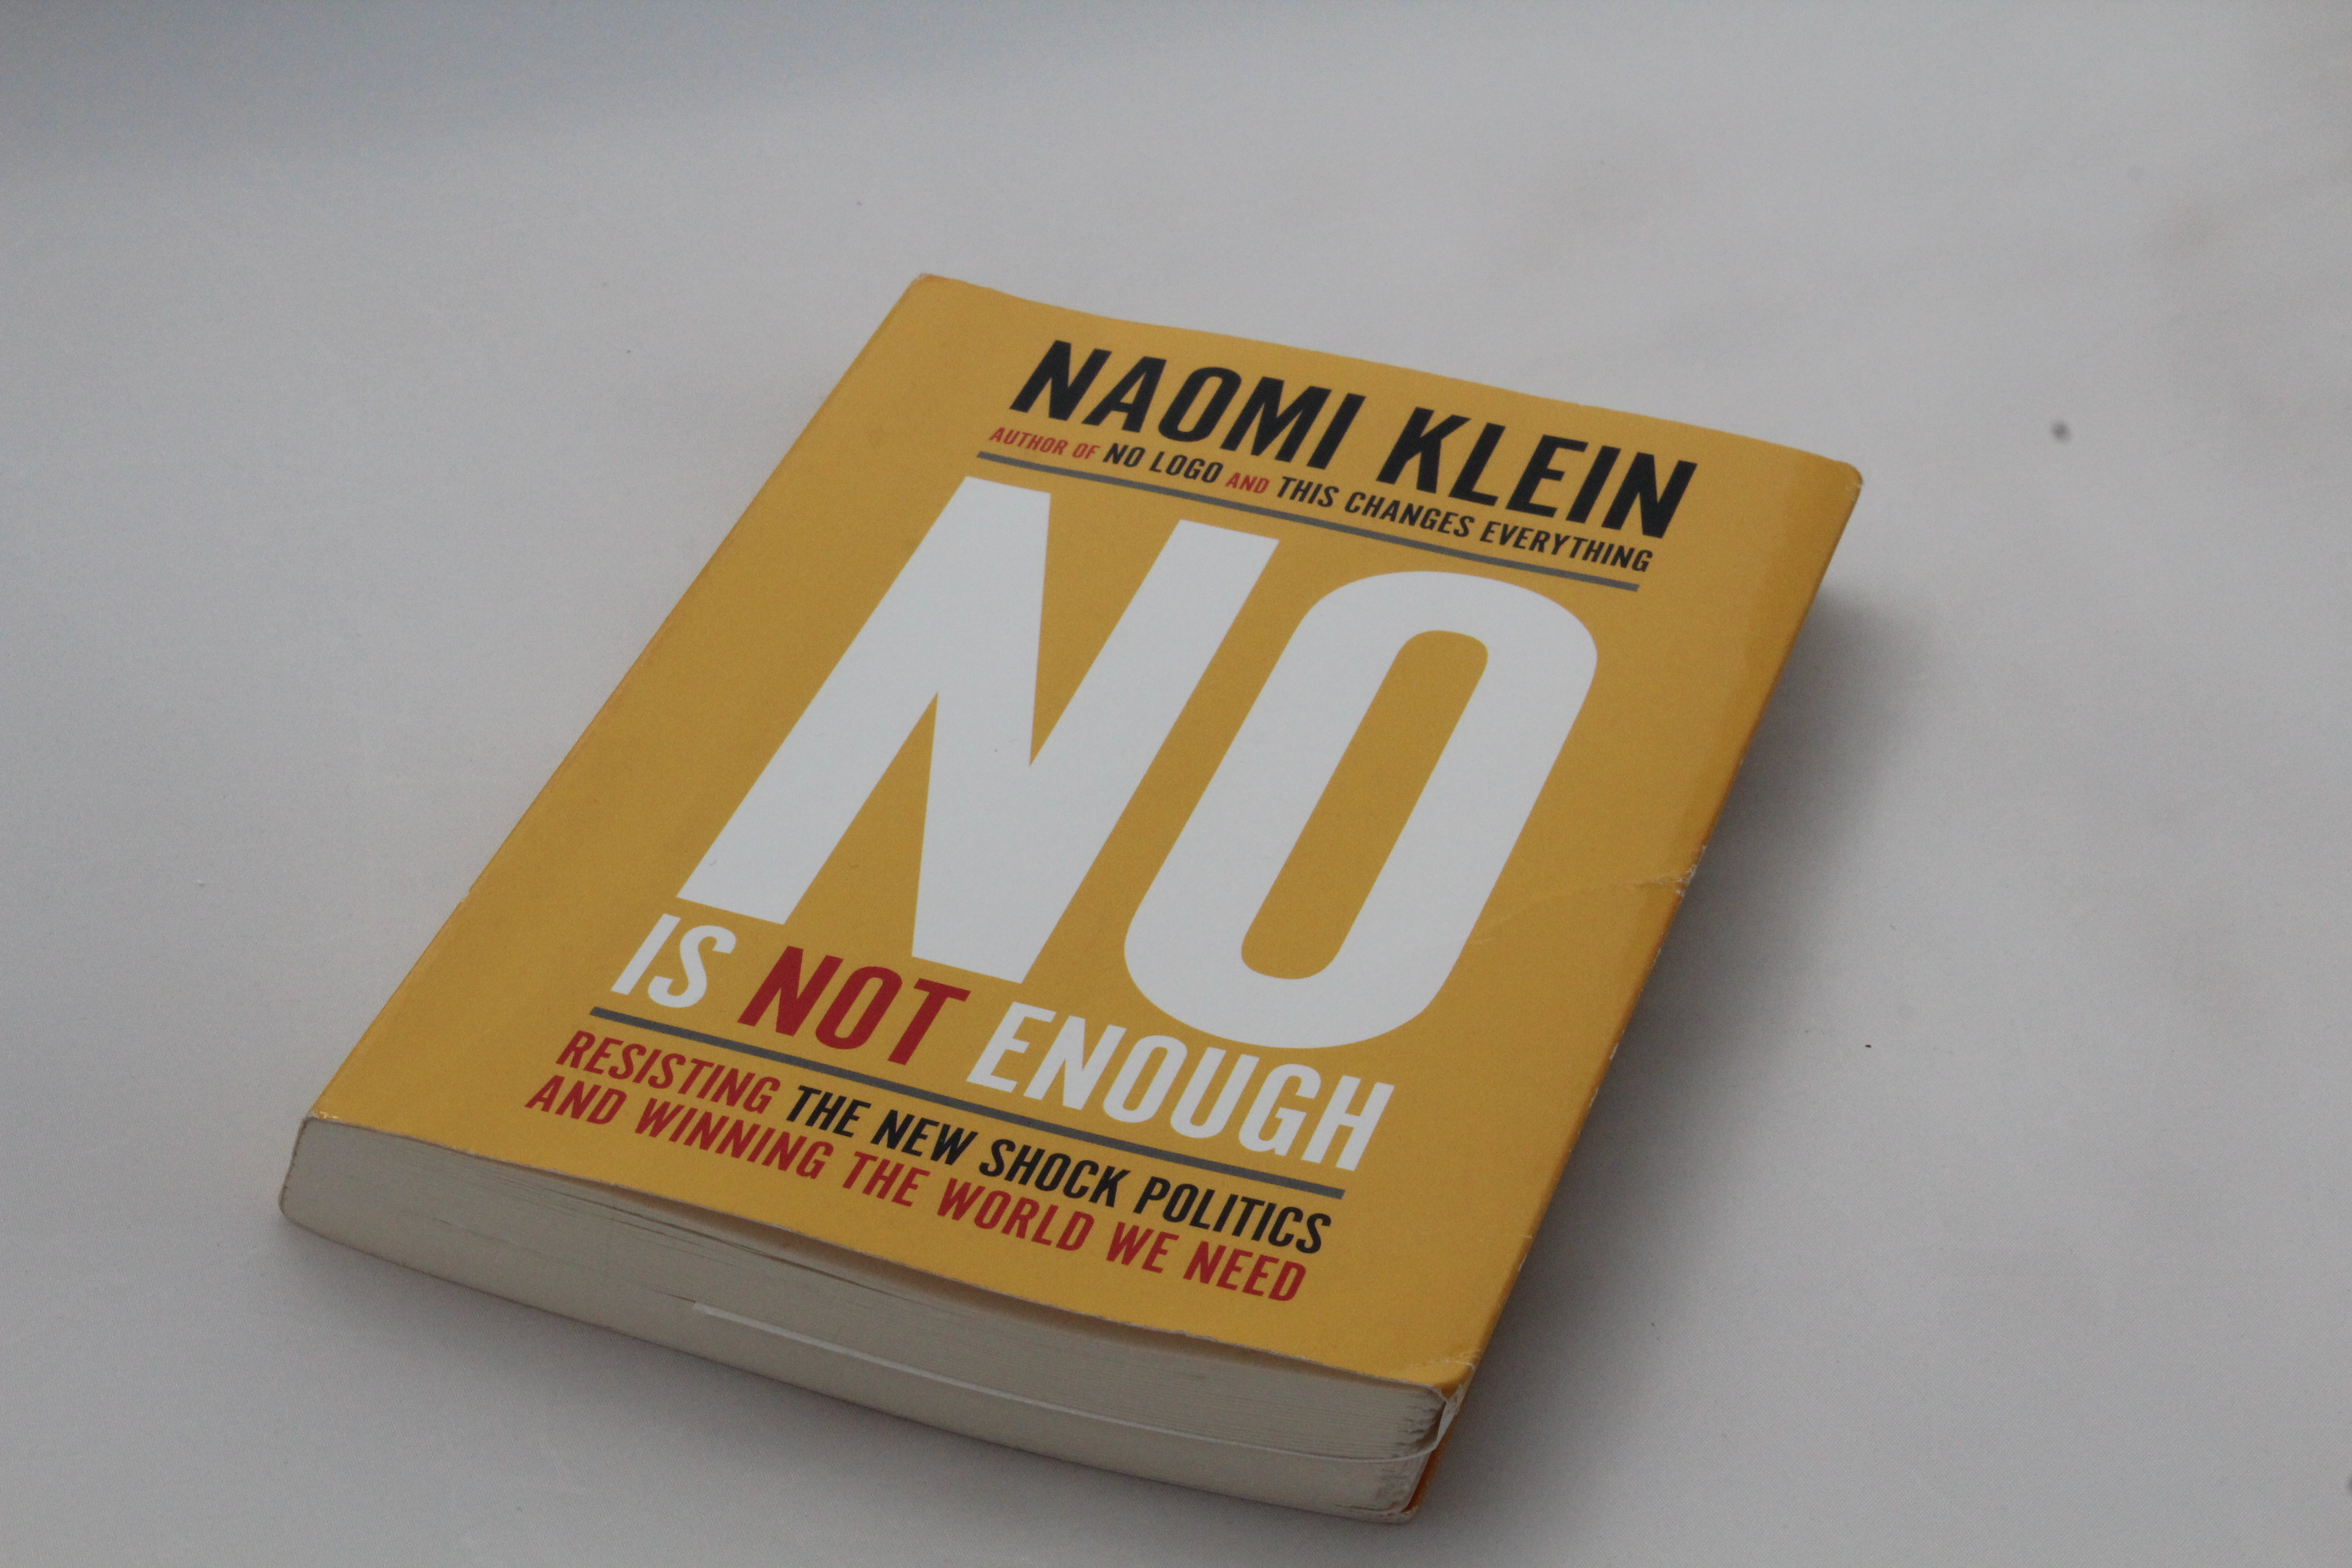 Naomi Klein's New Book